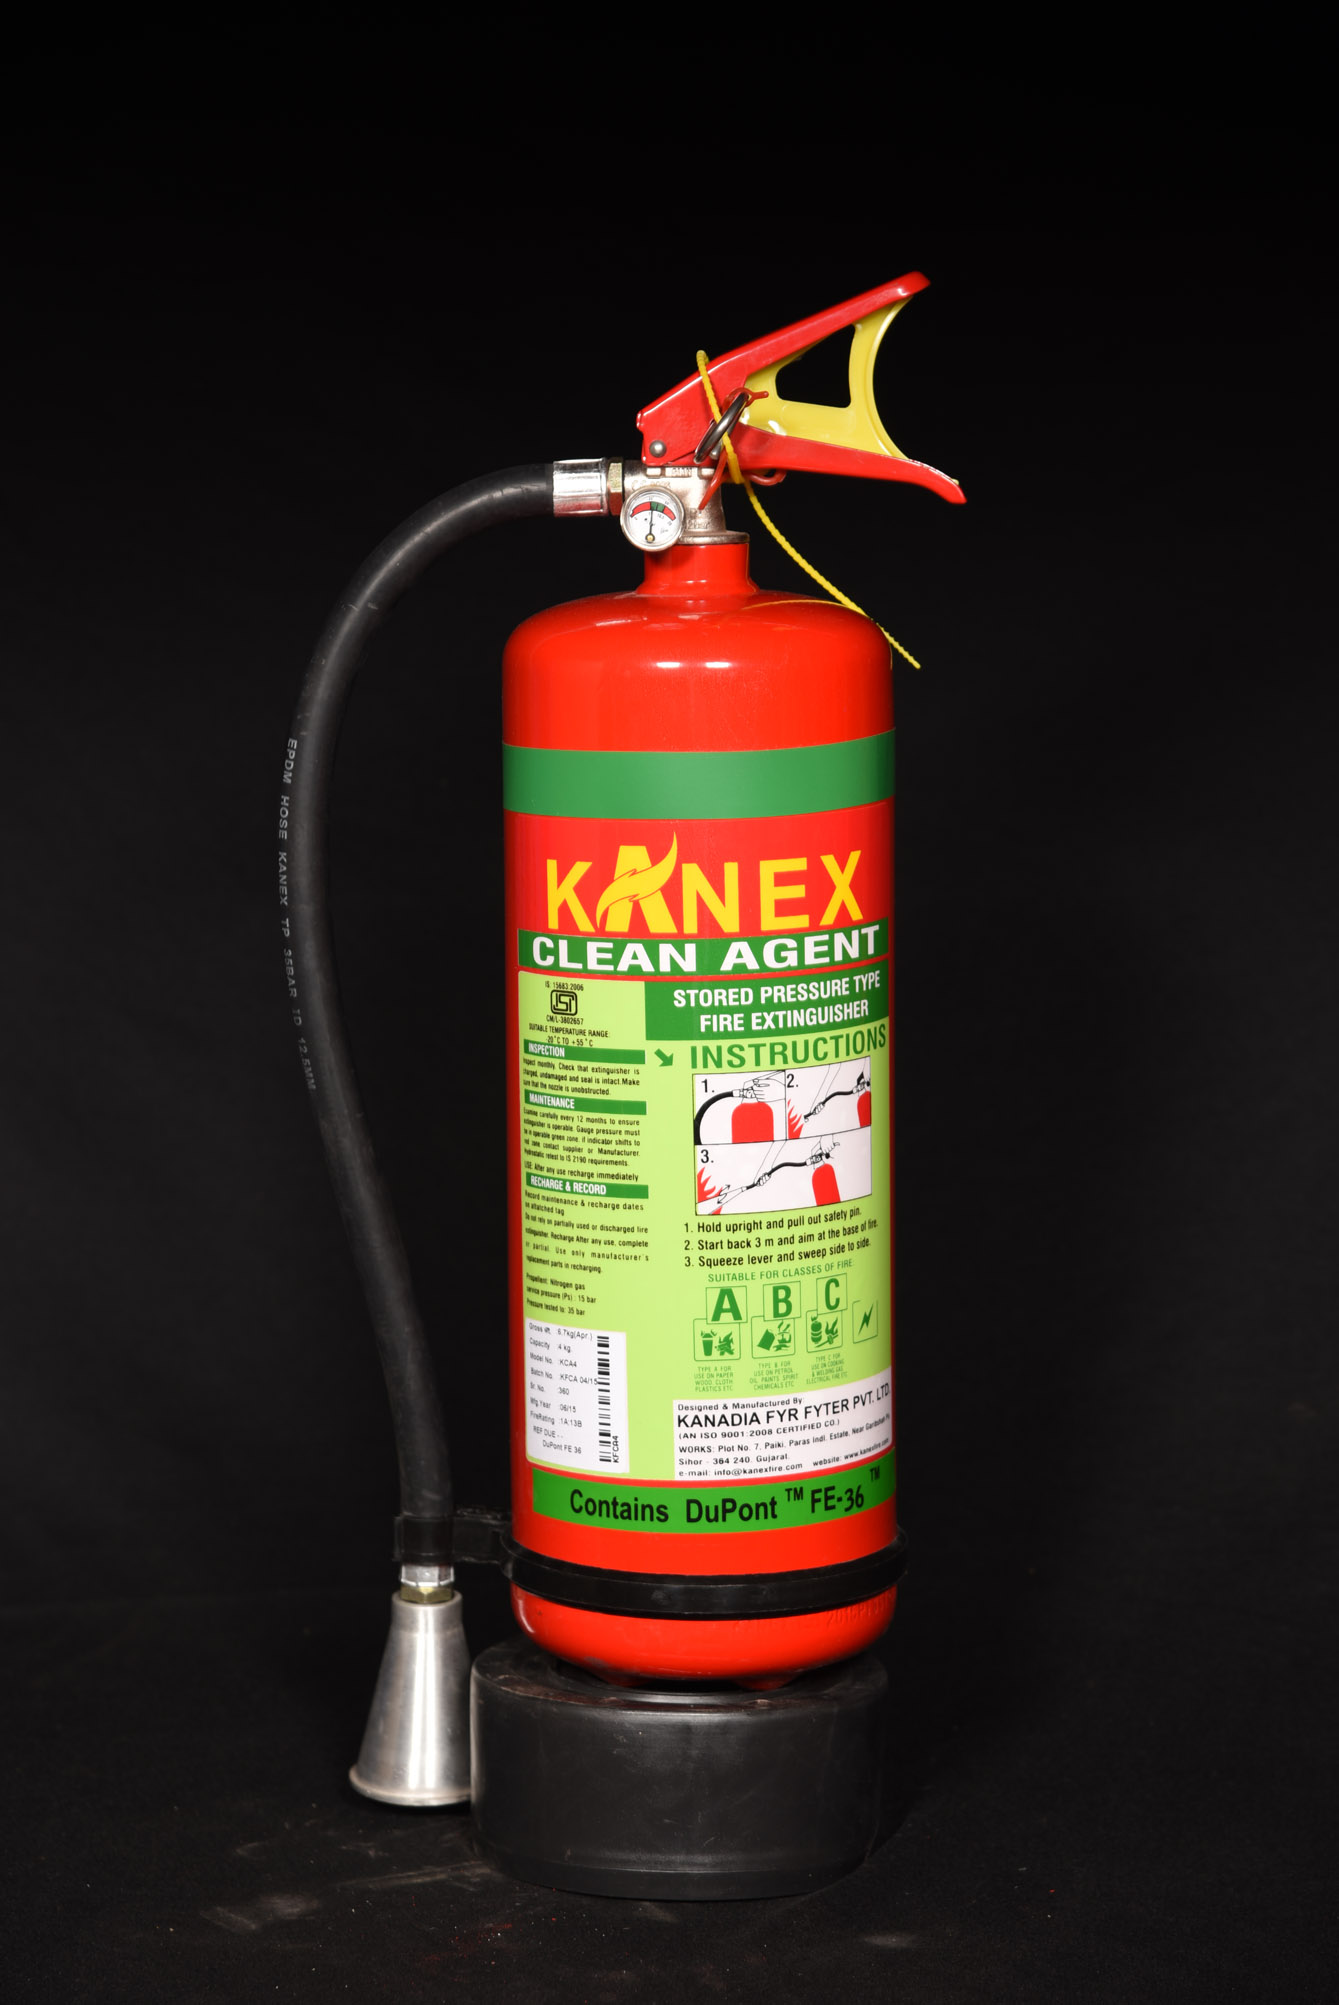 CLEAN AGENT GAS BASED FIRE EXTINGUISHERS